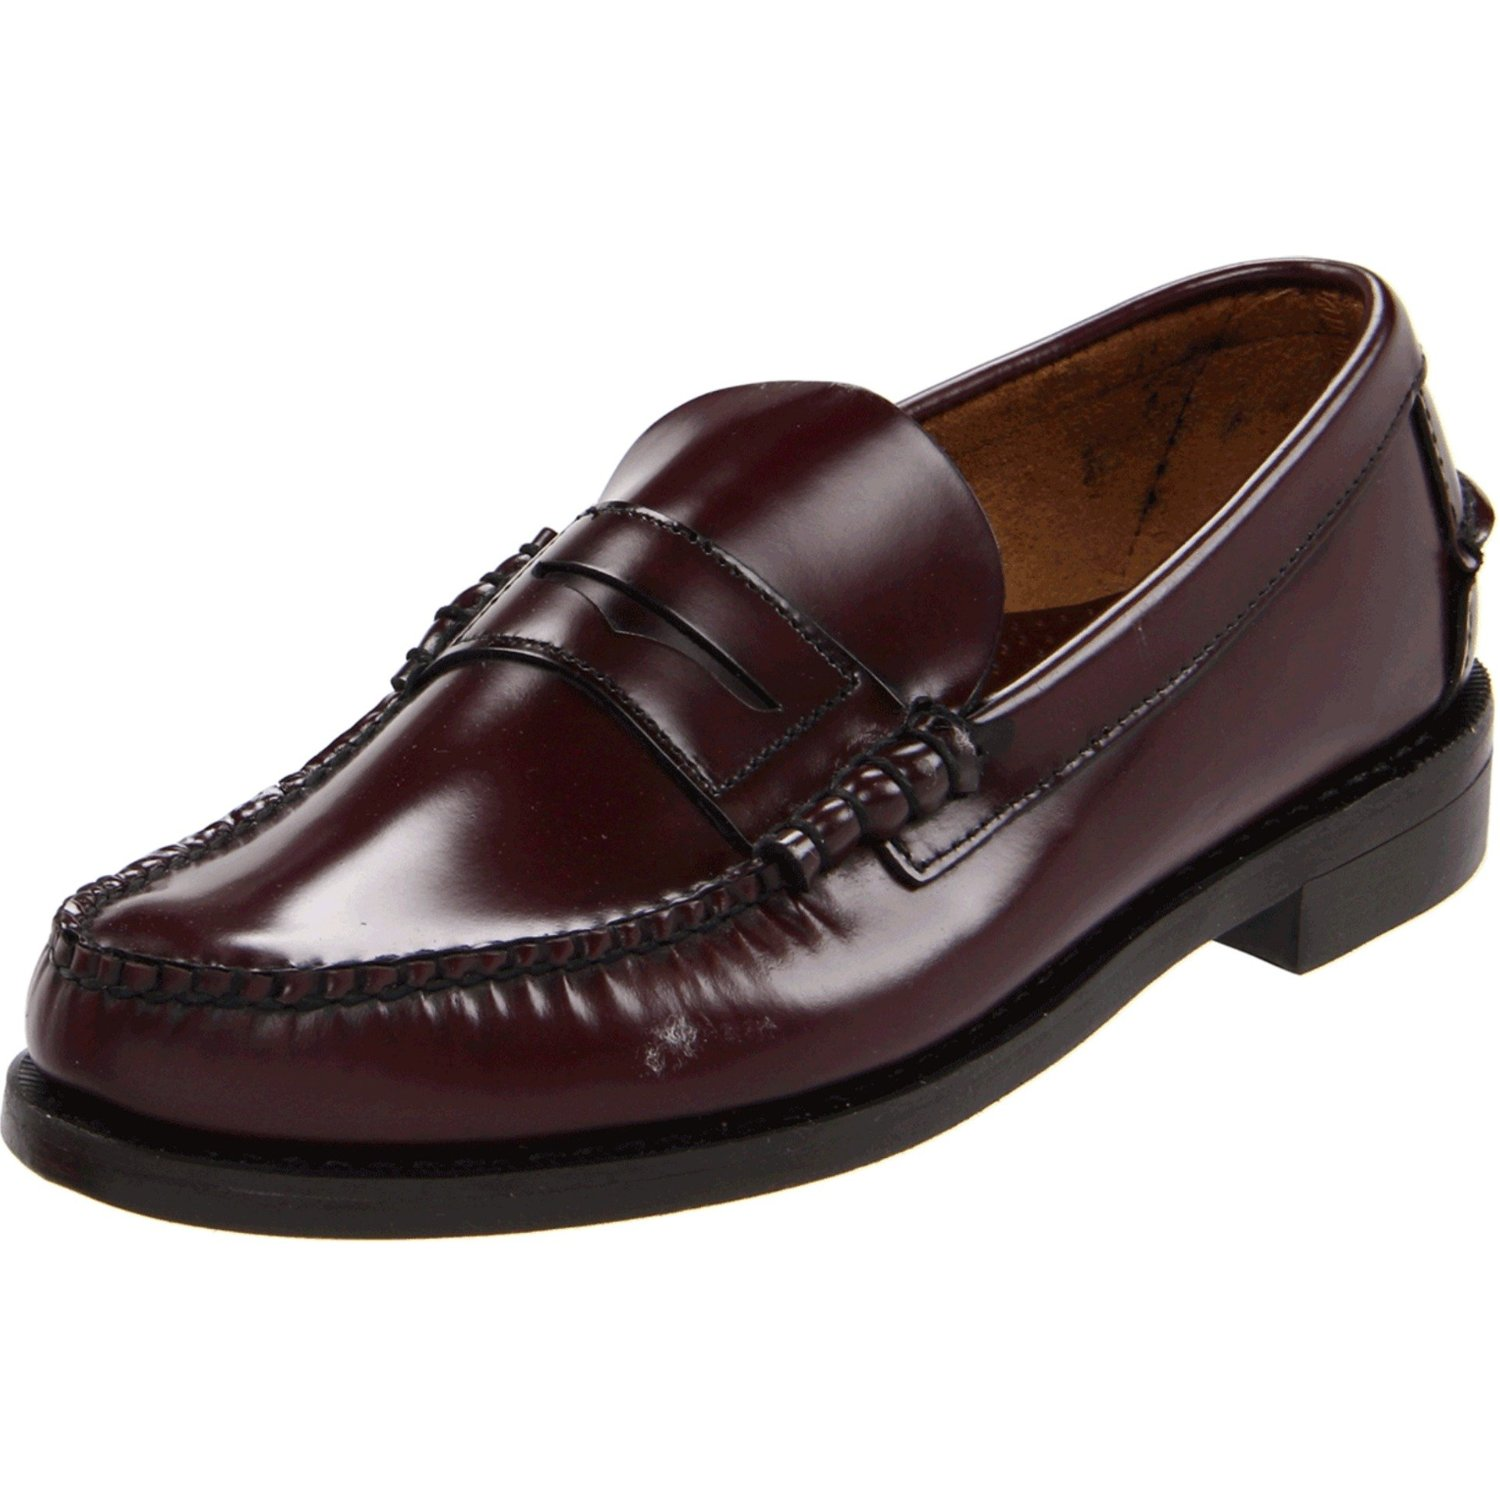 Classic Loafer Shoes Mens